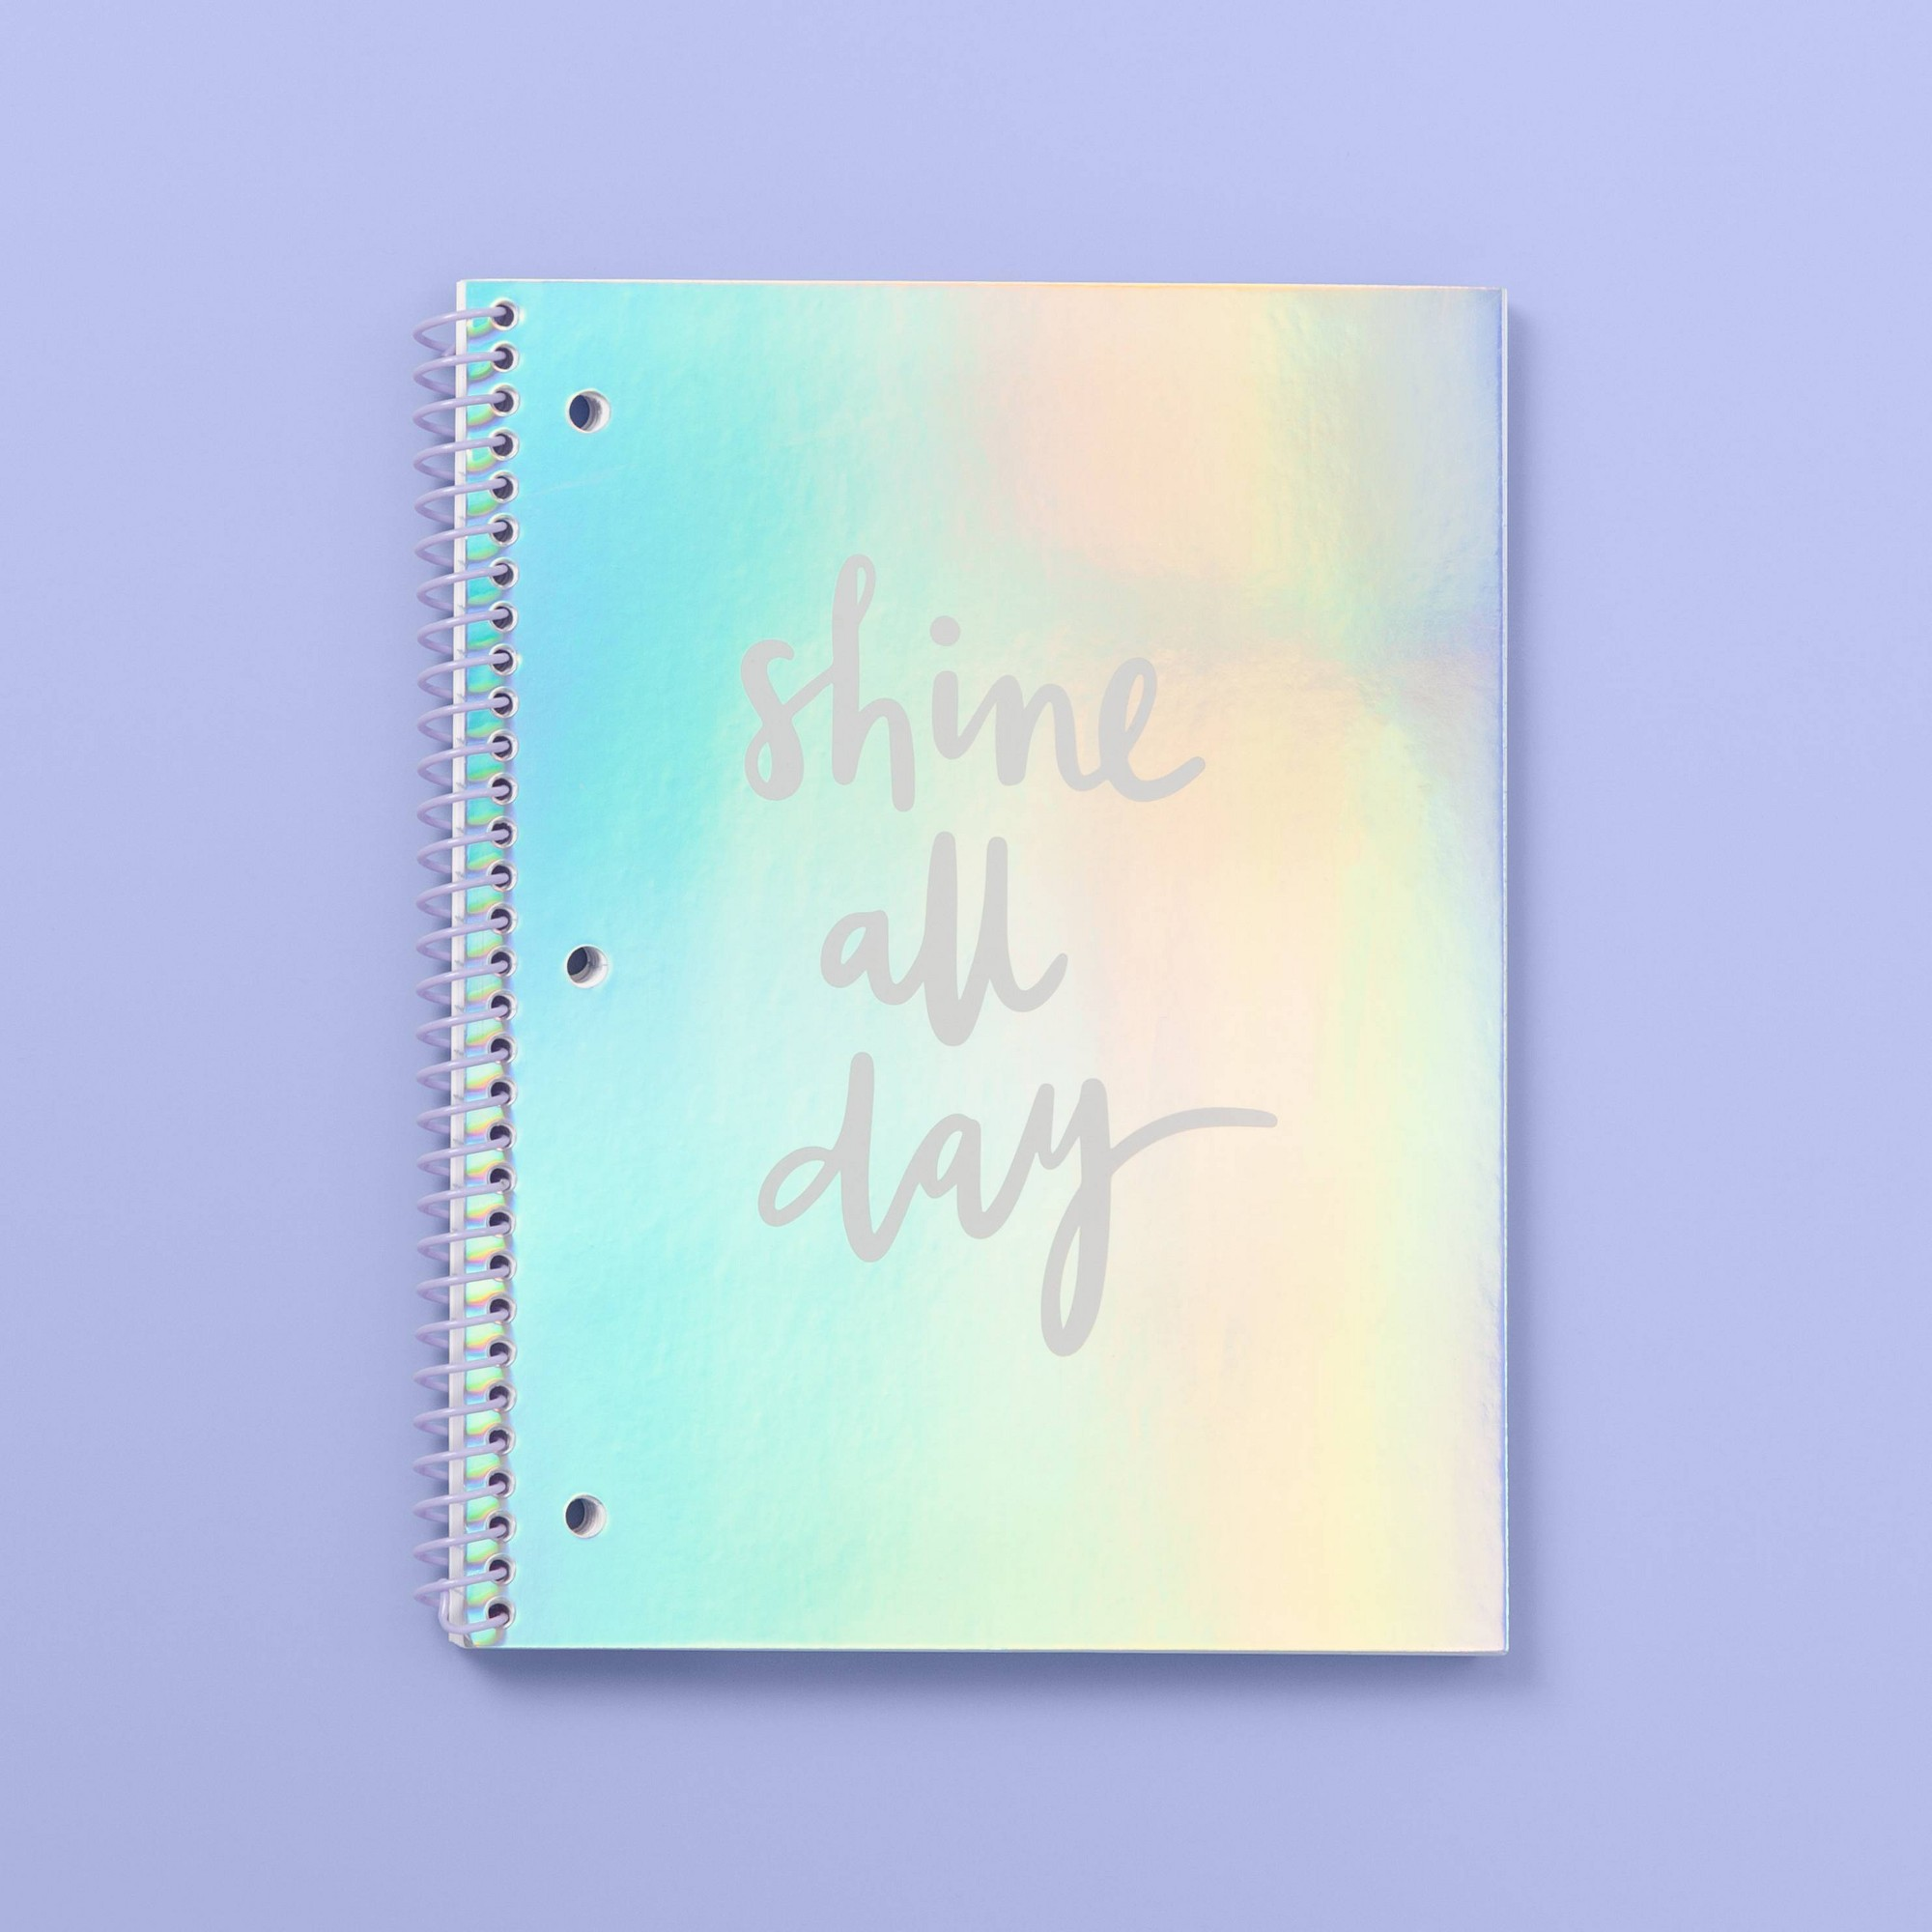 Iridescent Aurora Shine All Day Wide Ruled Spiral Subject Notebook - More Than Magic, Multi-Colored